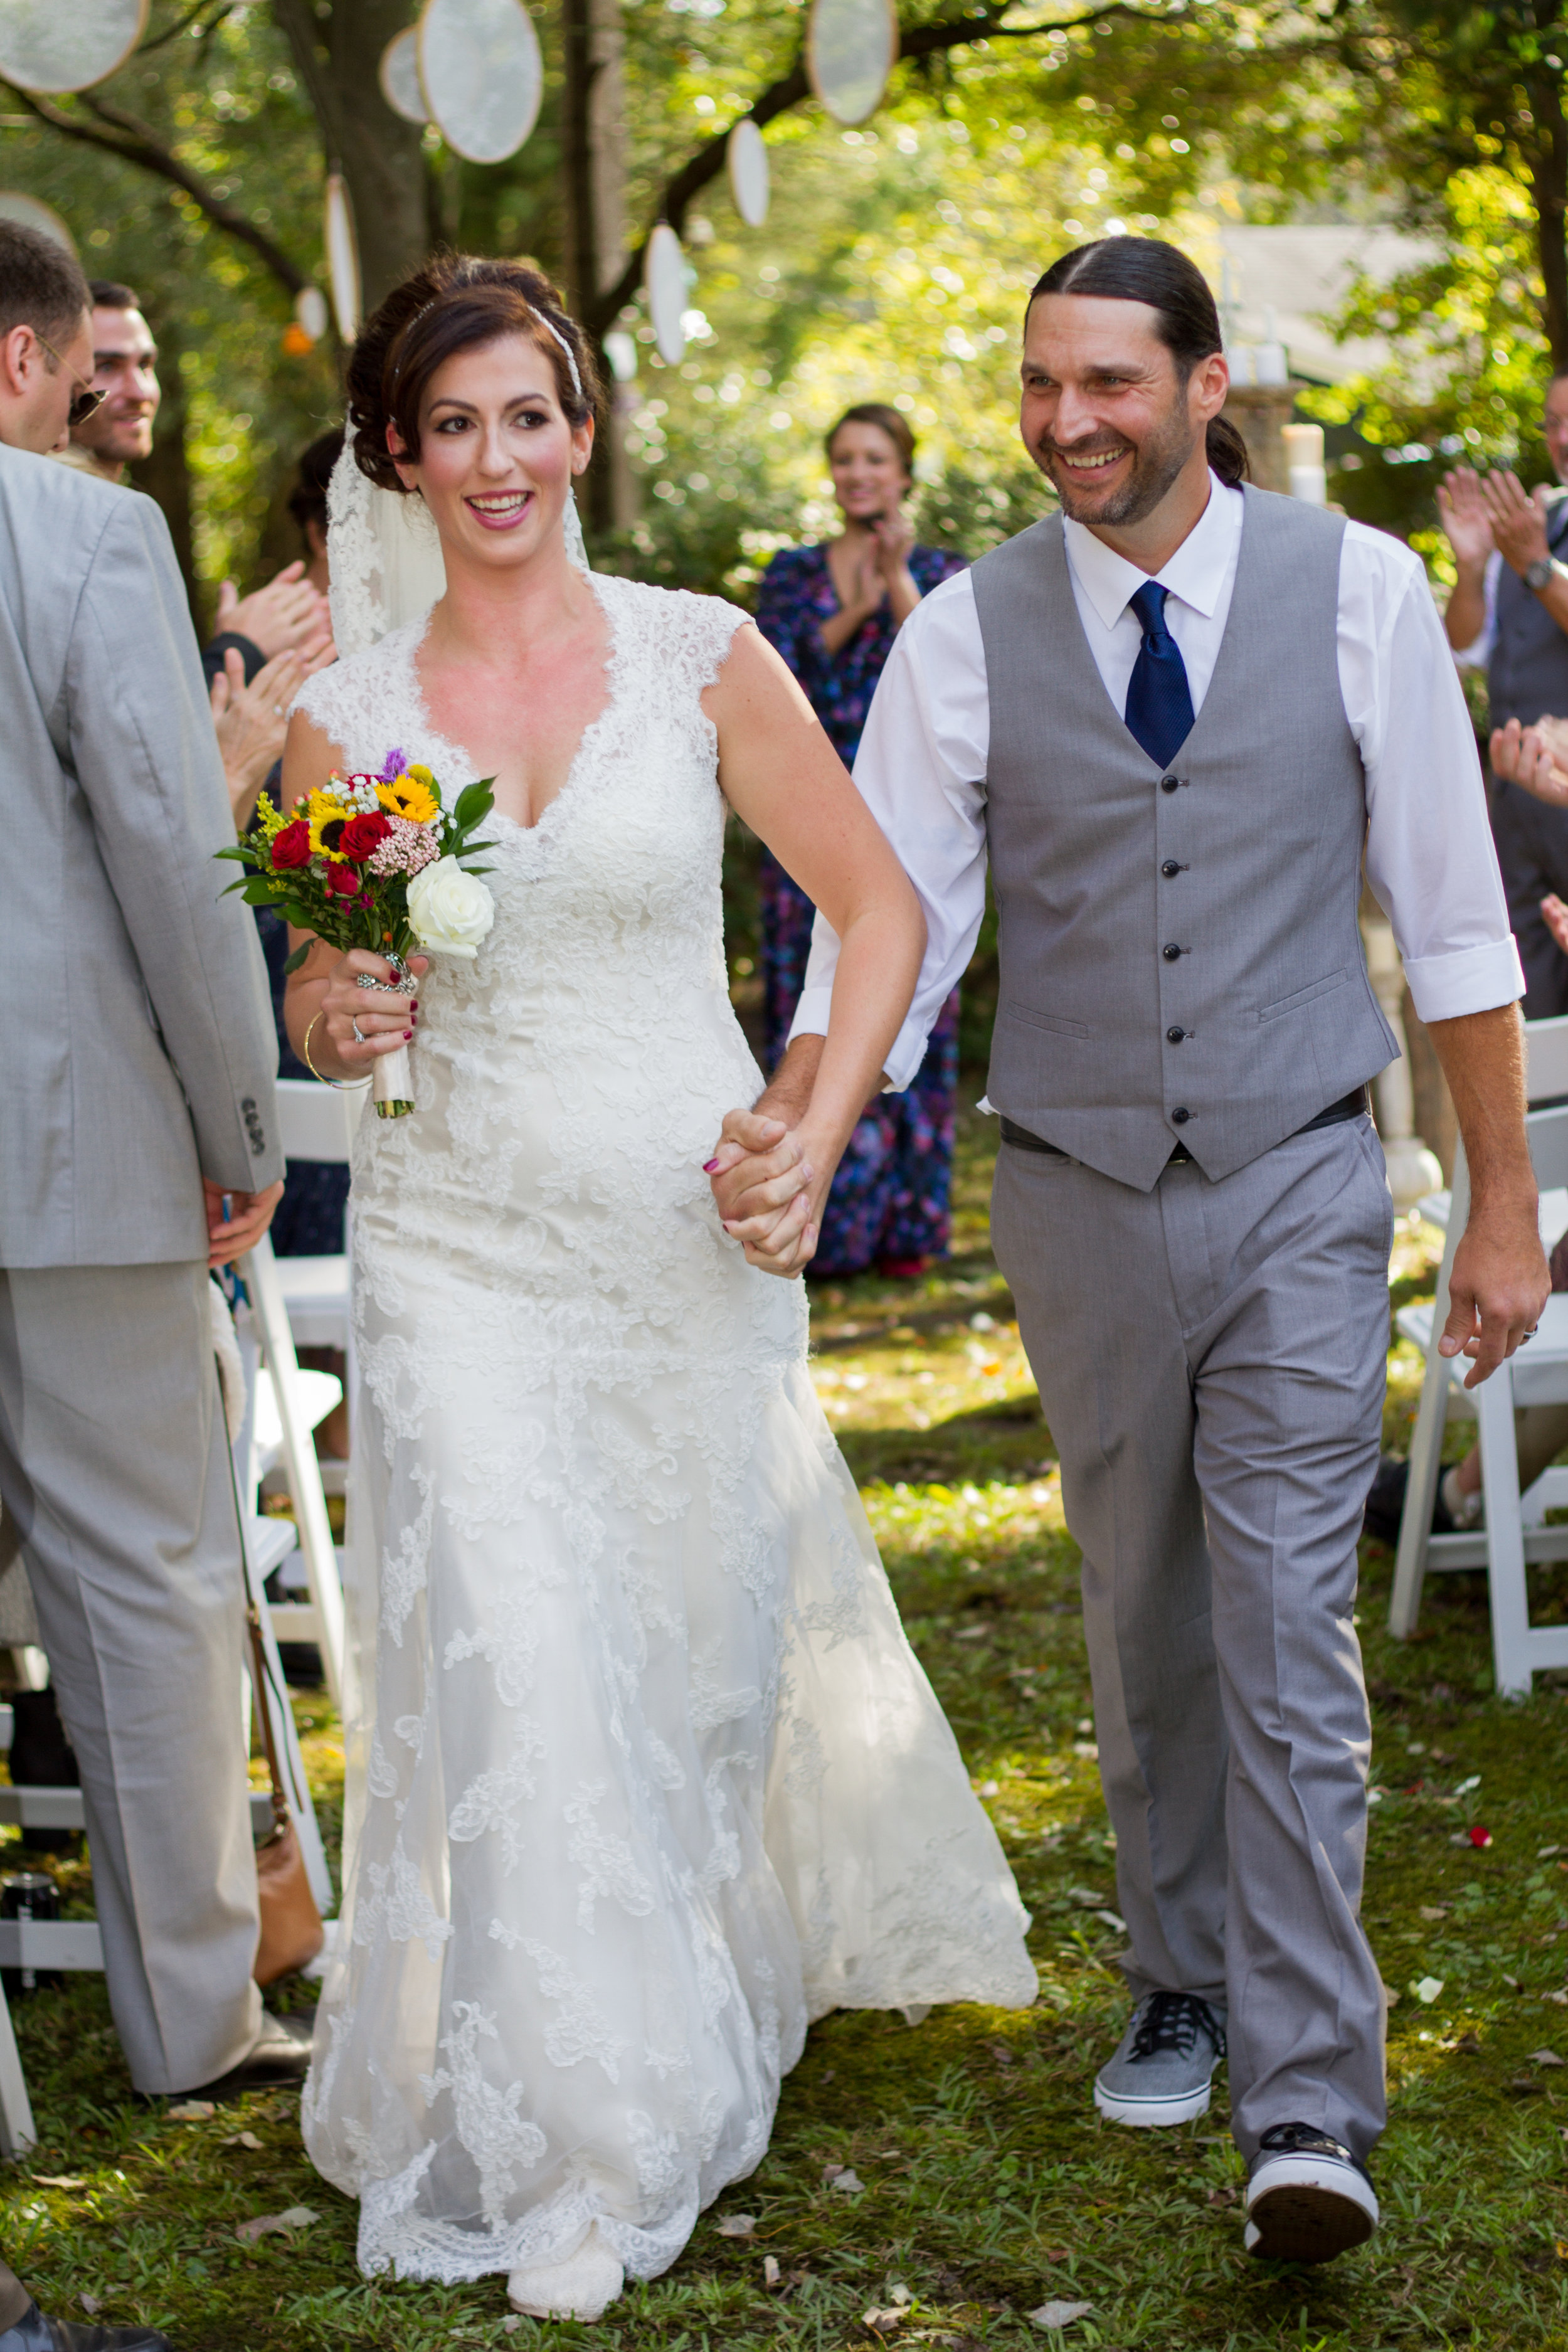 Jacqueline and Shawn Wedding (236 of 597).jpg